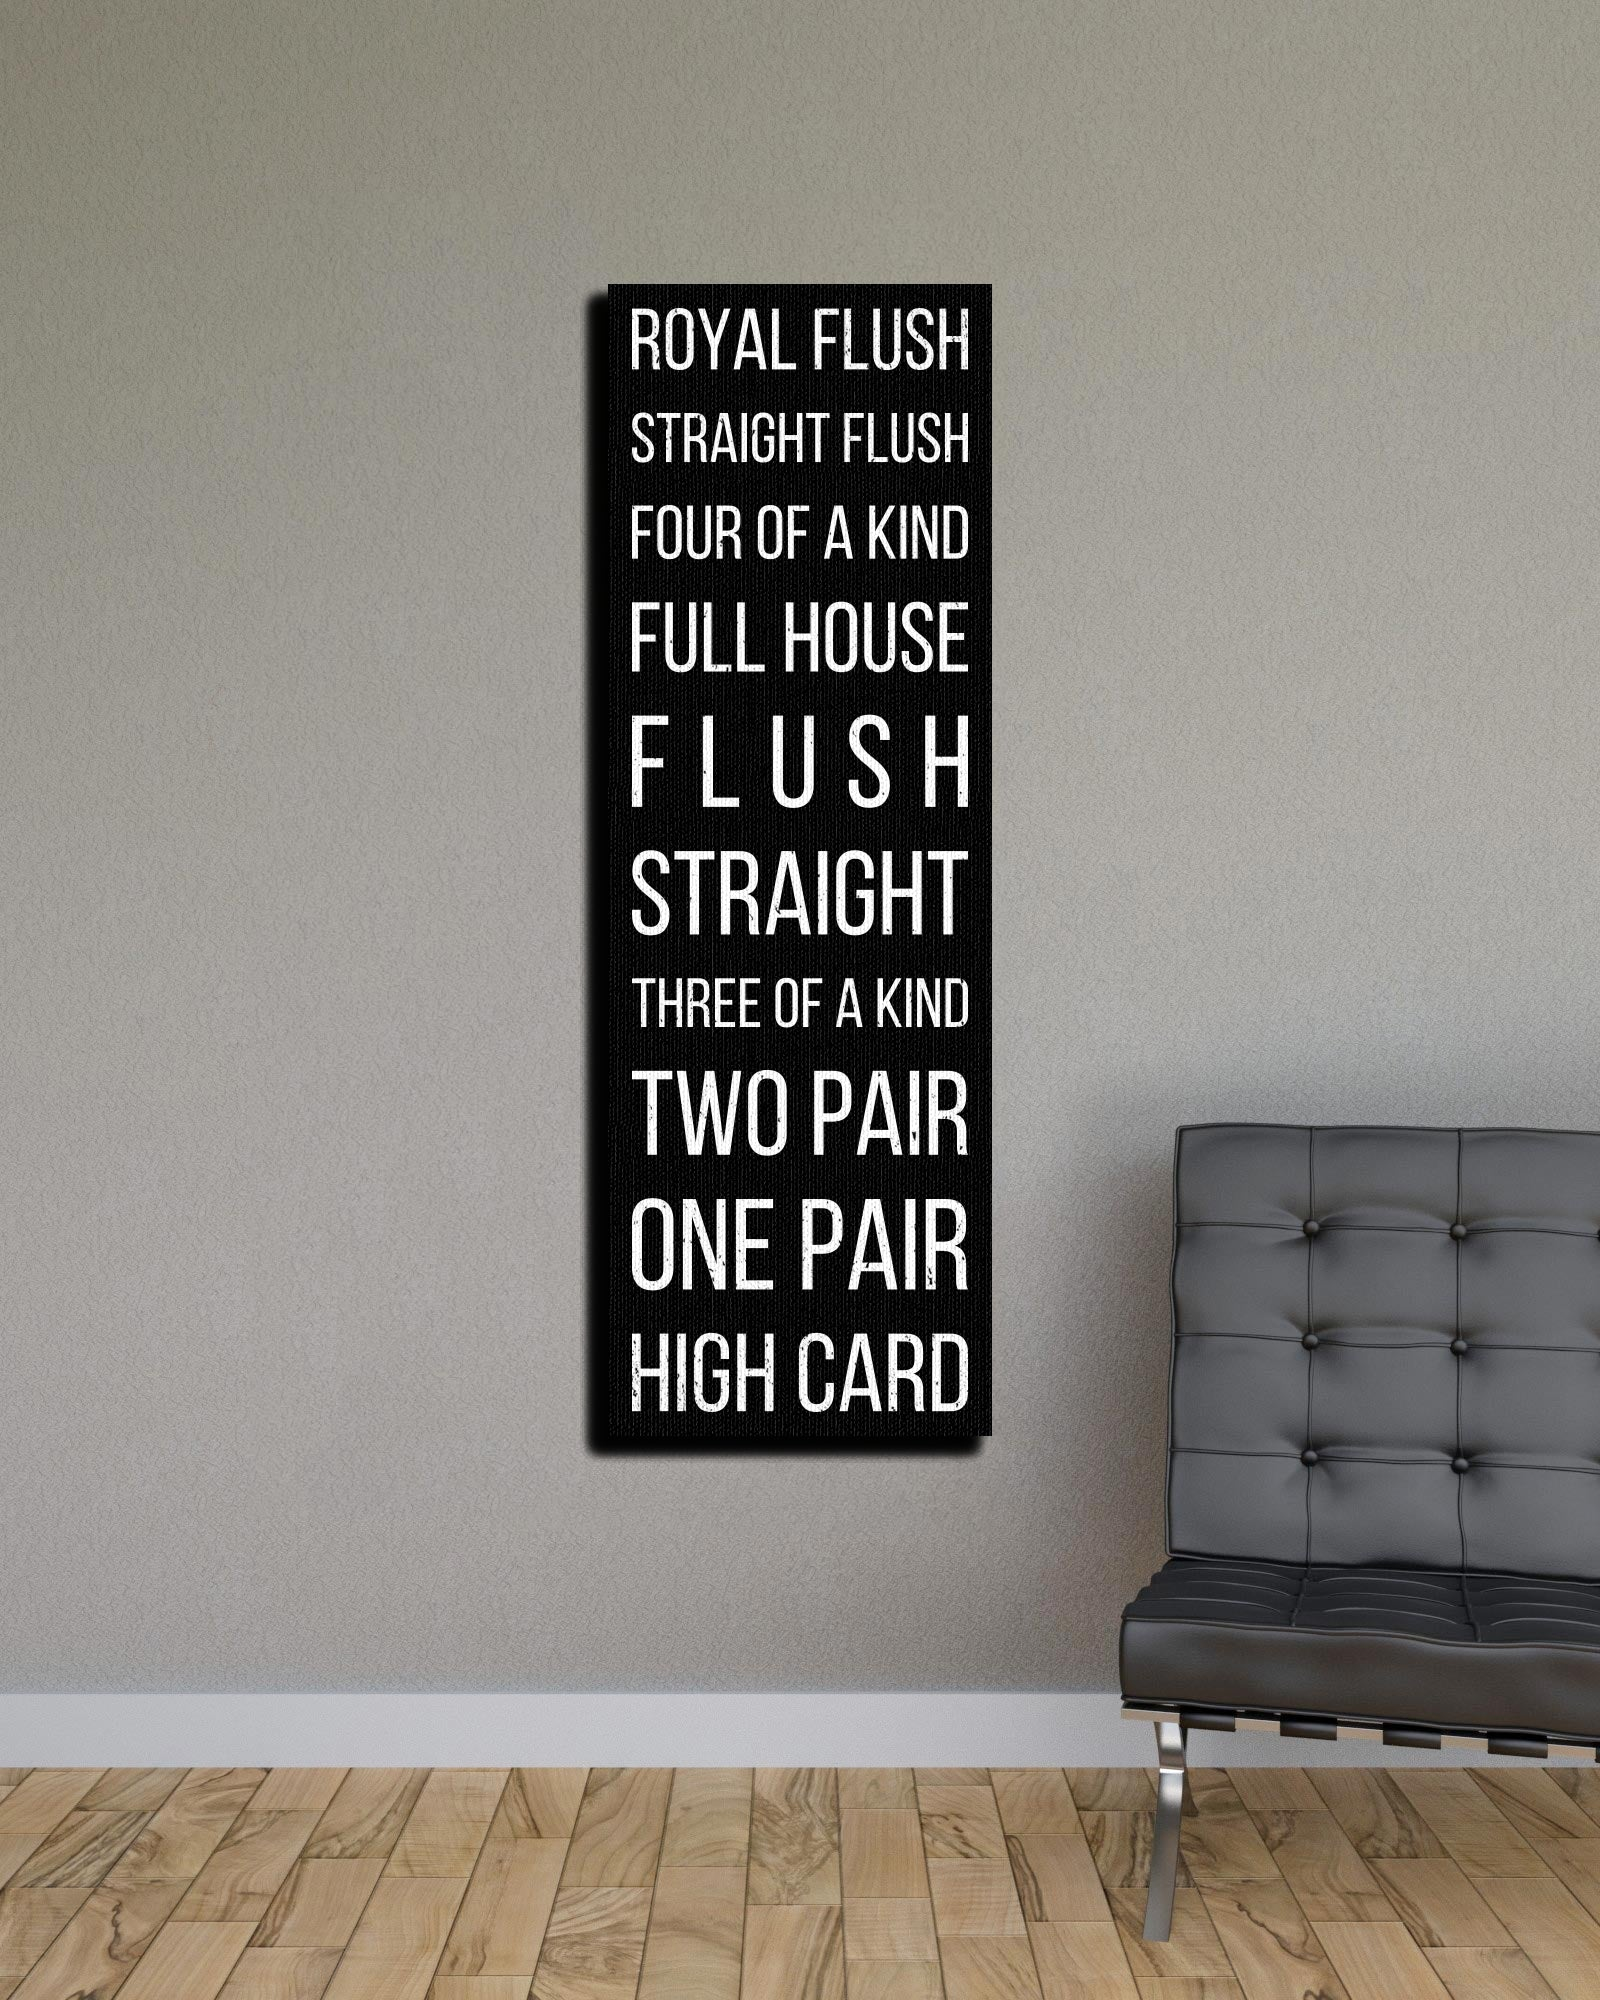 Poker Royal Flush Straight Flush Four of a kind Bus Scroll Subway Canvas Print